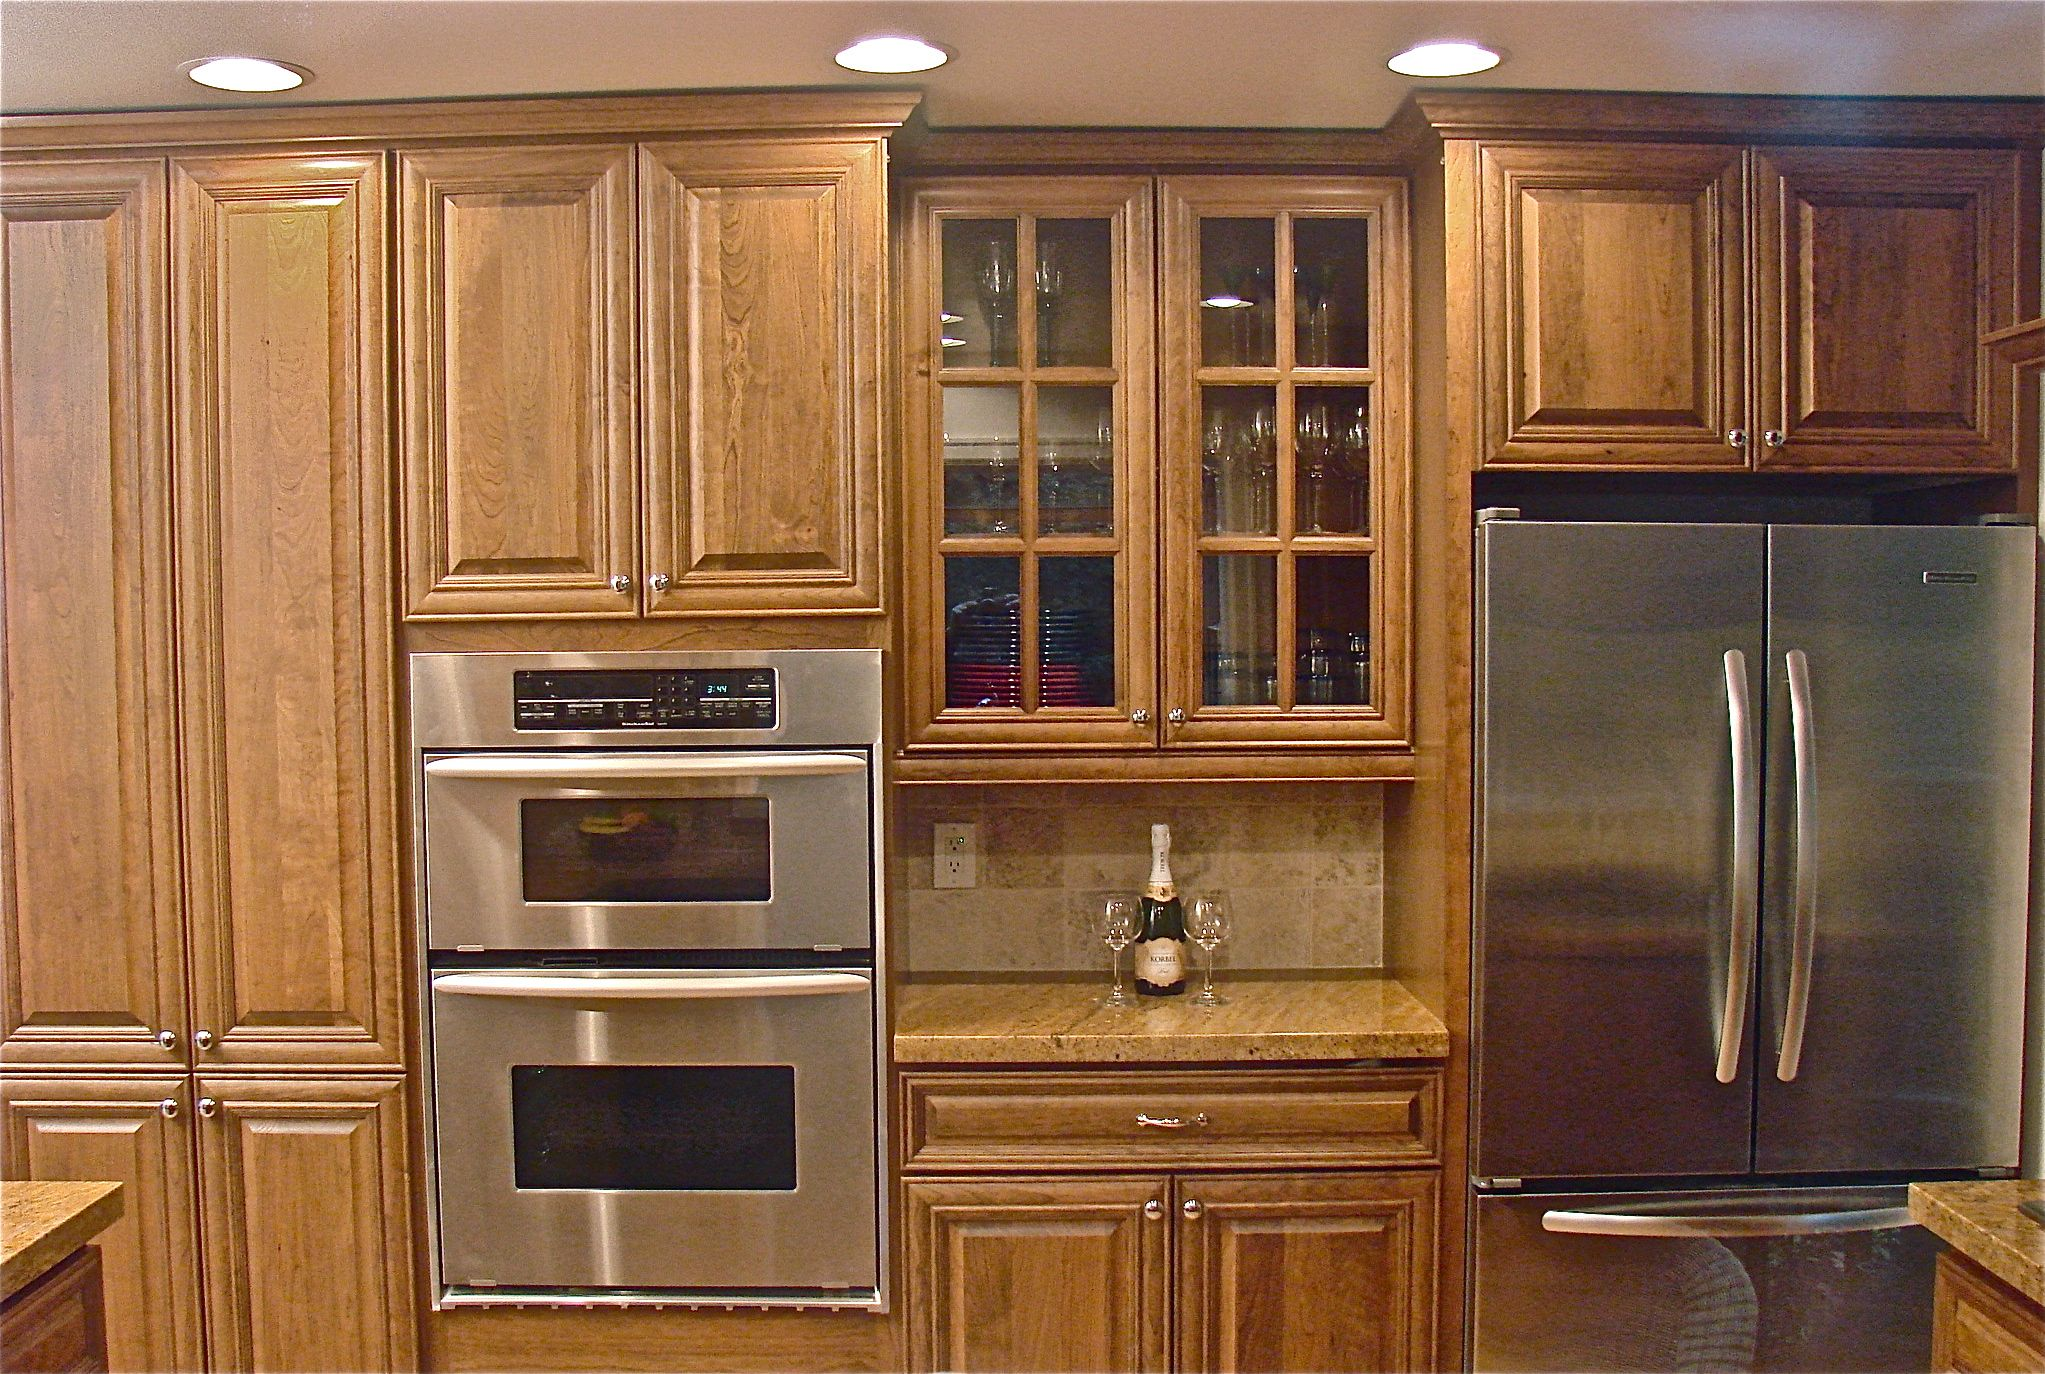 Fill Up Yourfancy Kitchen Cabinets Wall Space For Small Kitchens Interior Design